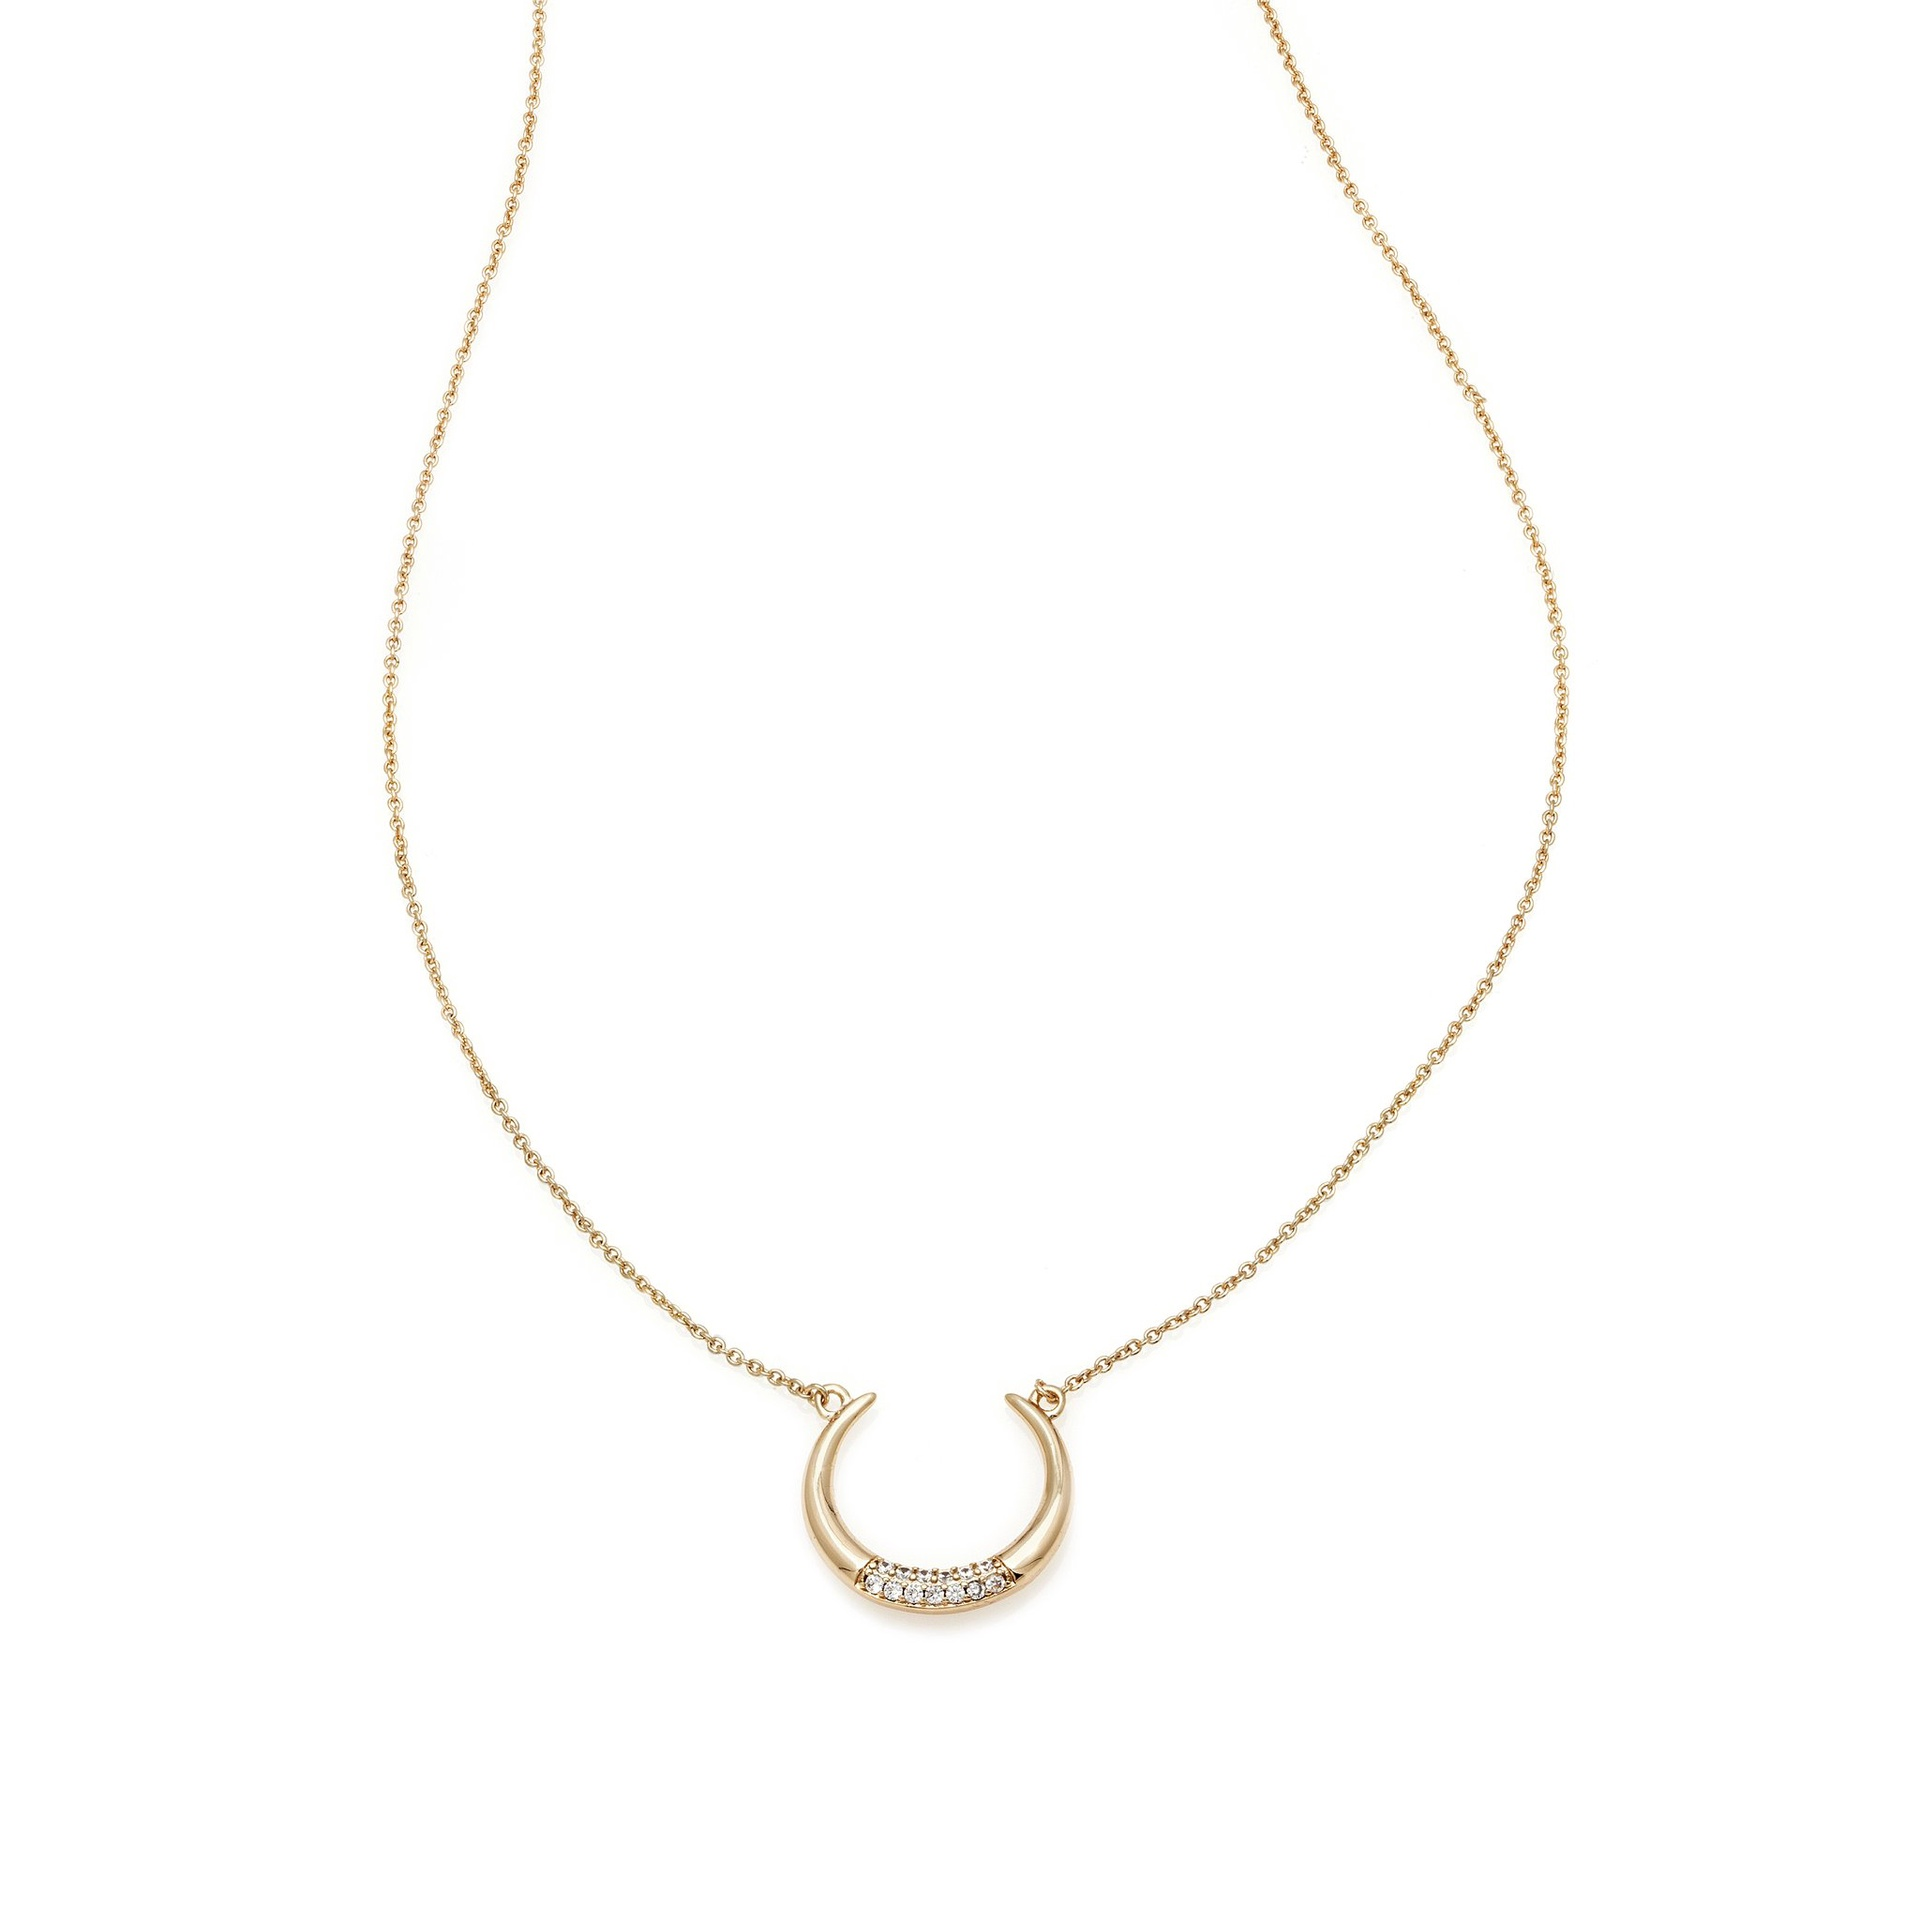 MELANIE AULD - LUNA NECKLACE IN GOLD